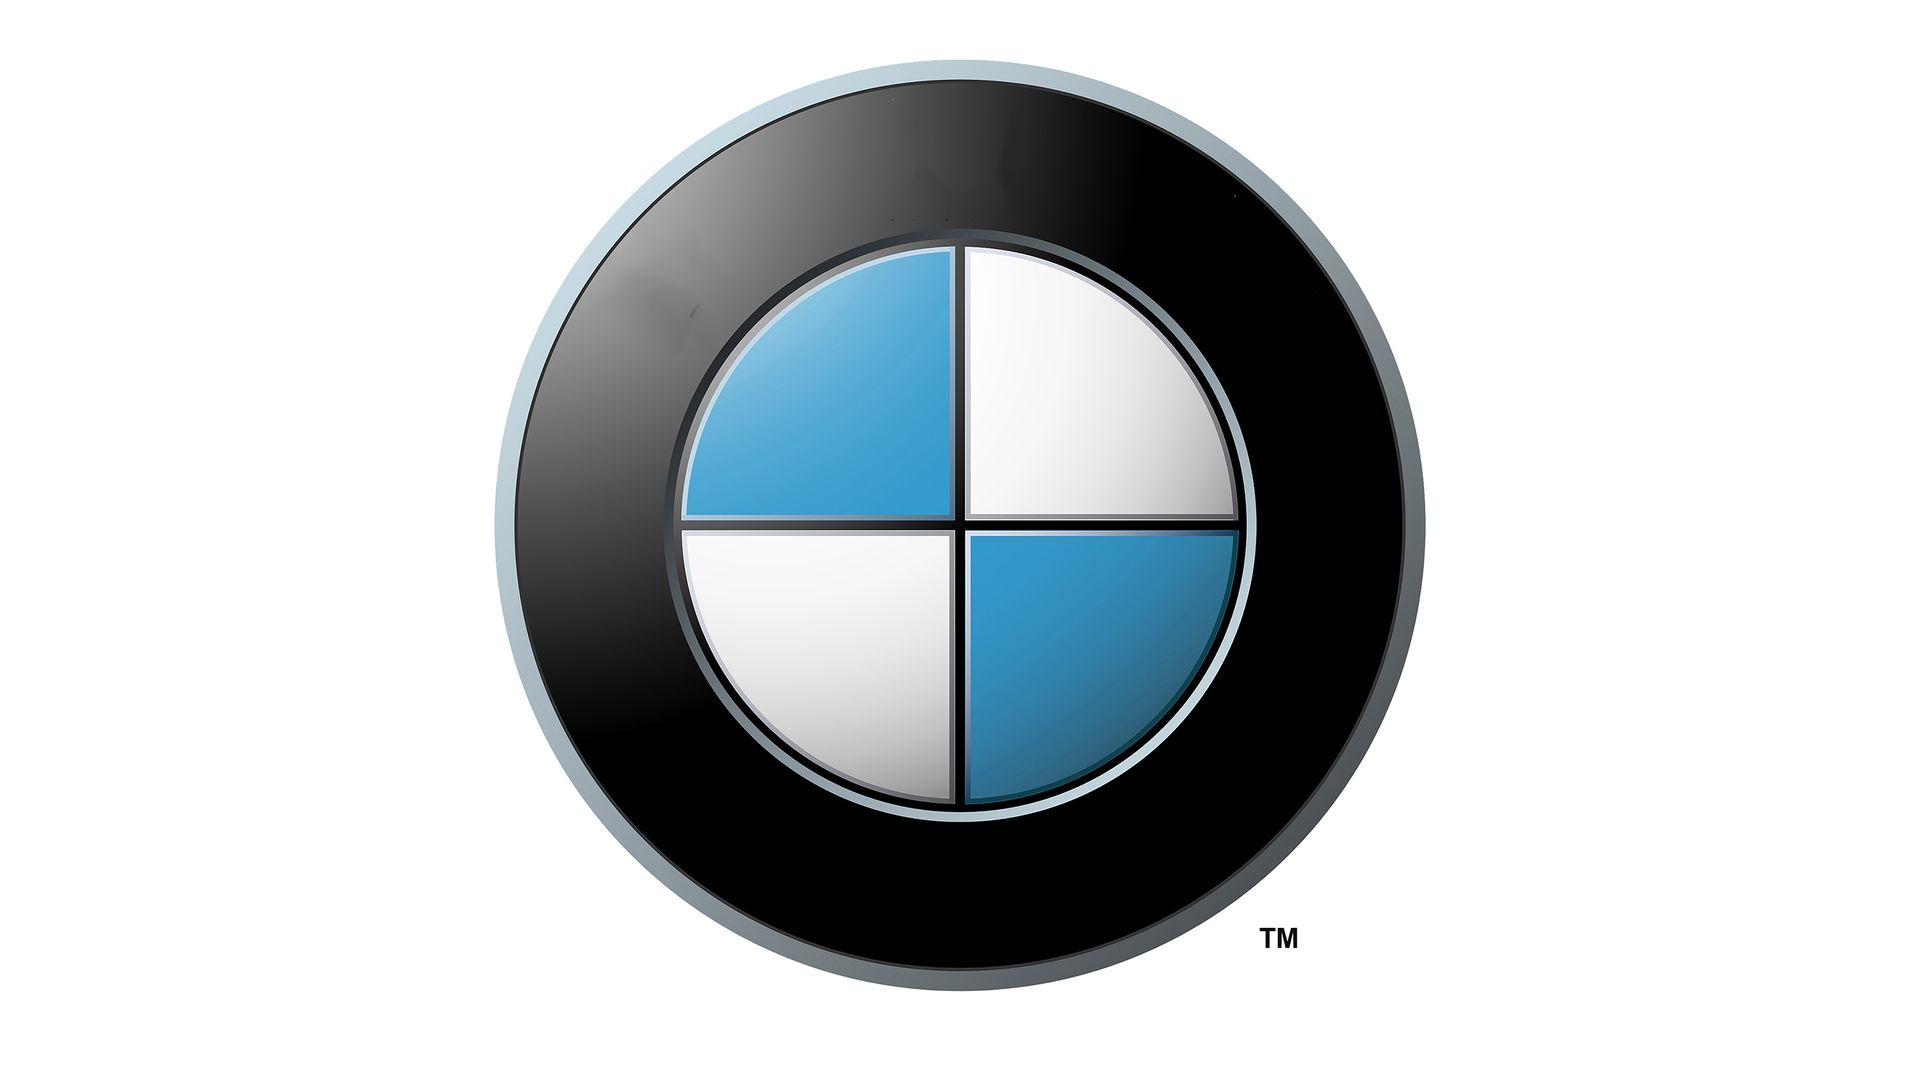 Which car company is this?